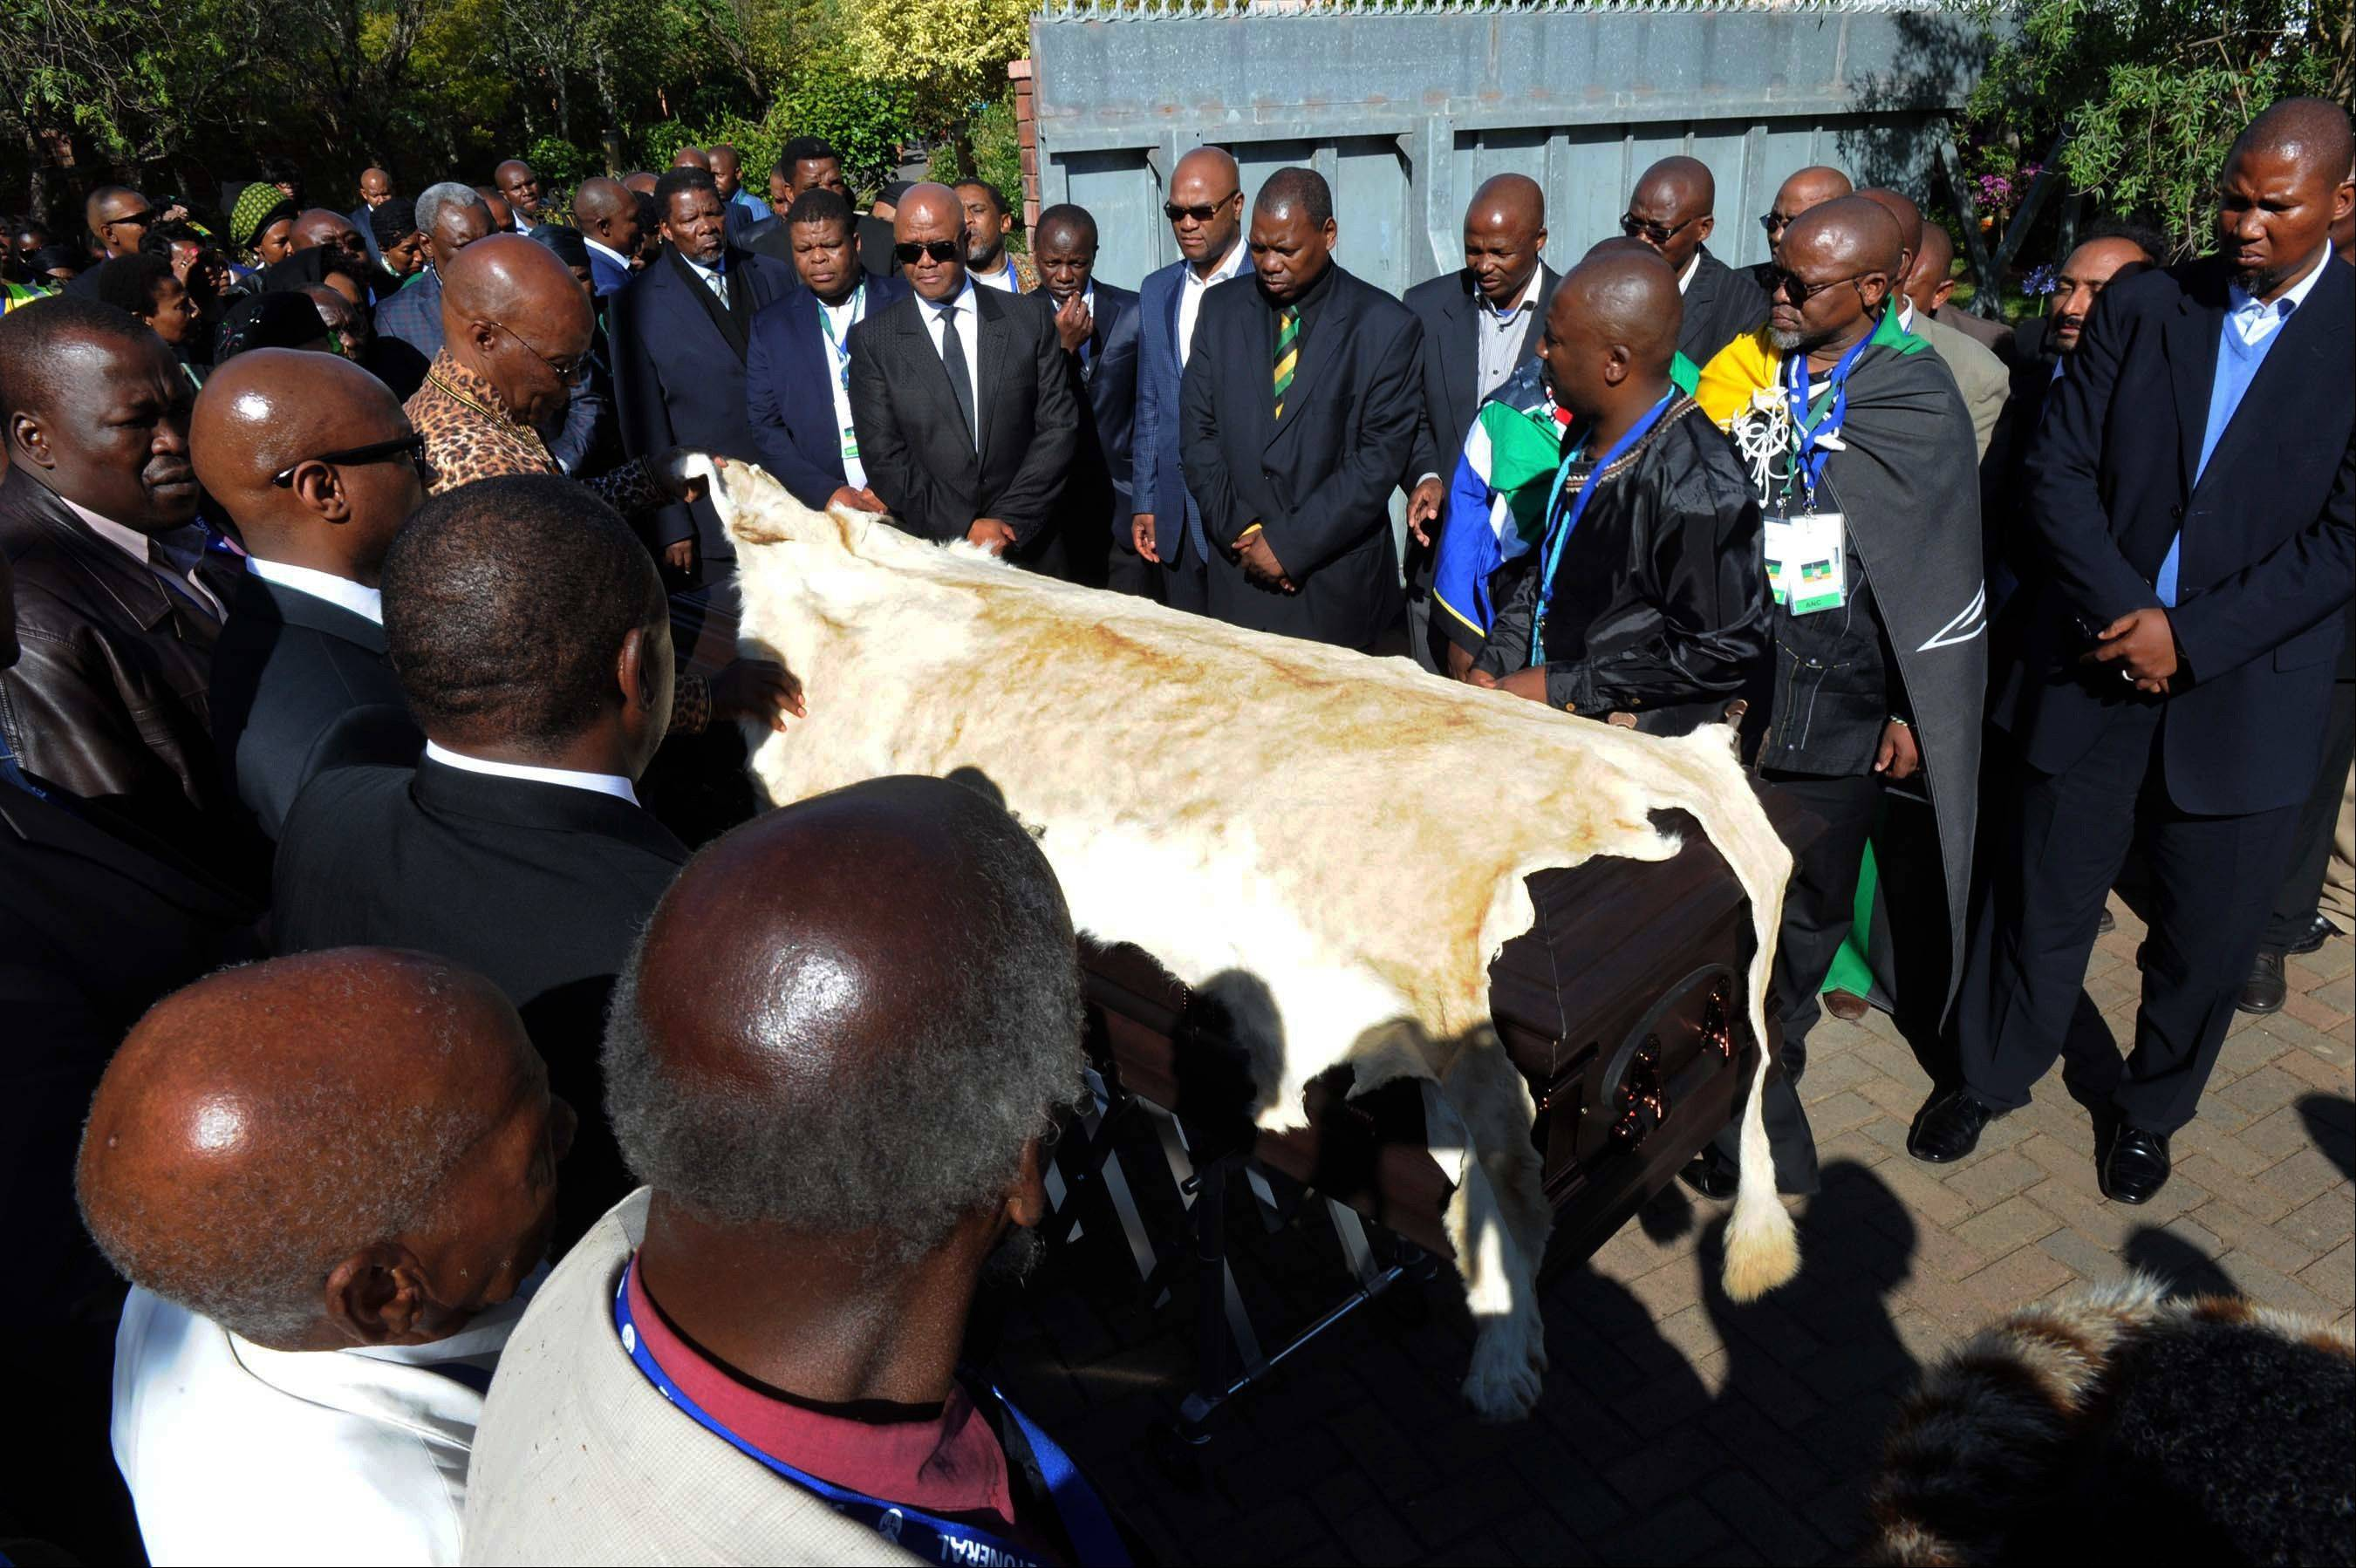 Nelson Mandela's grandson Mandla Mandela, right, watches as local chiefs drape the casket of former South African President Nelson Mandela with a lion skin as it arrives at the Mandela residence in Qunu, South Africa, Saturday.